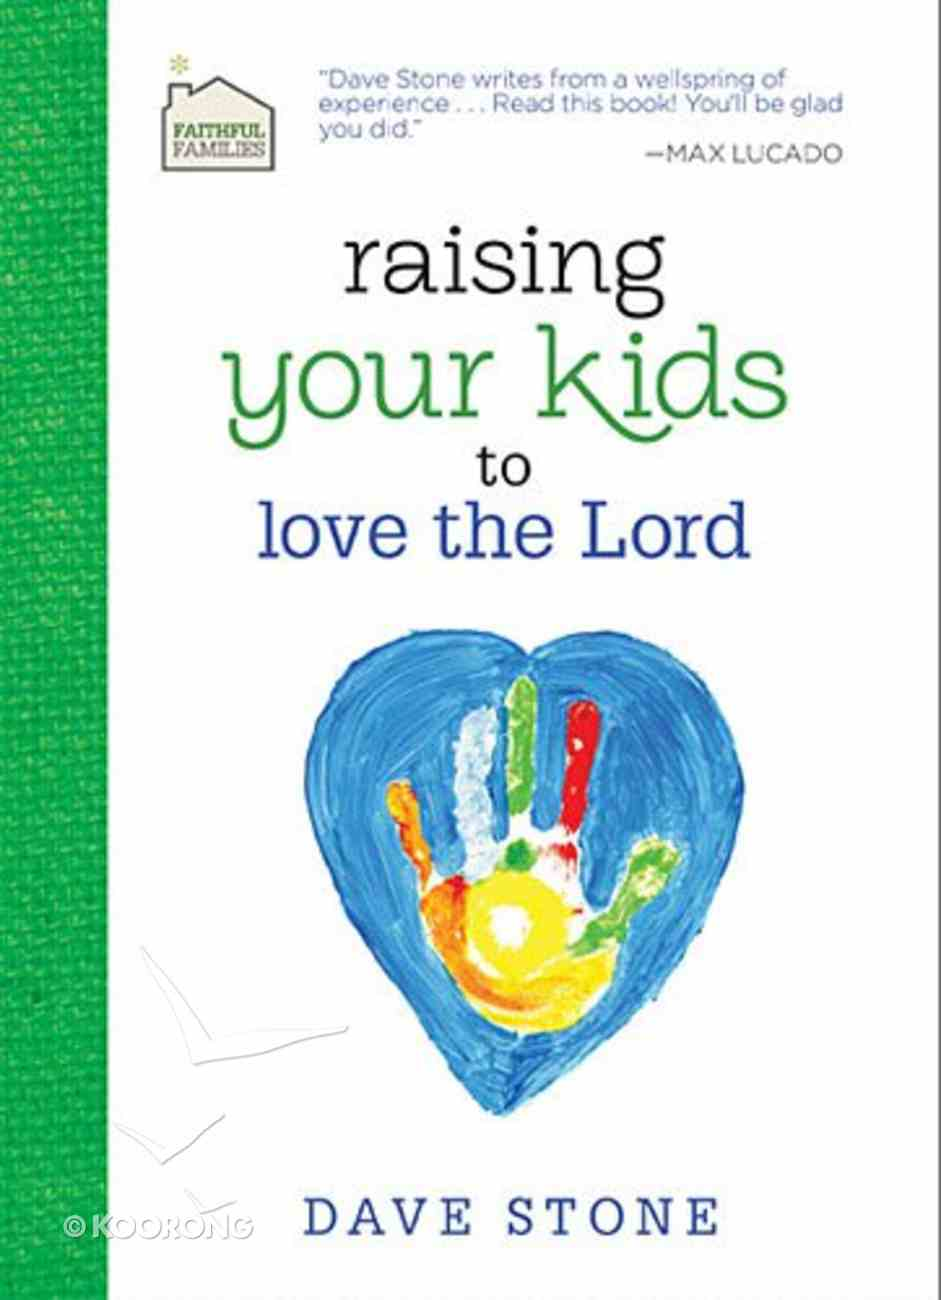 Faithful Families: Raising Your Kids to Love the Lord Hardback